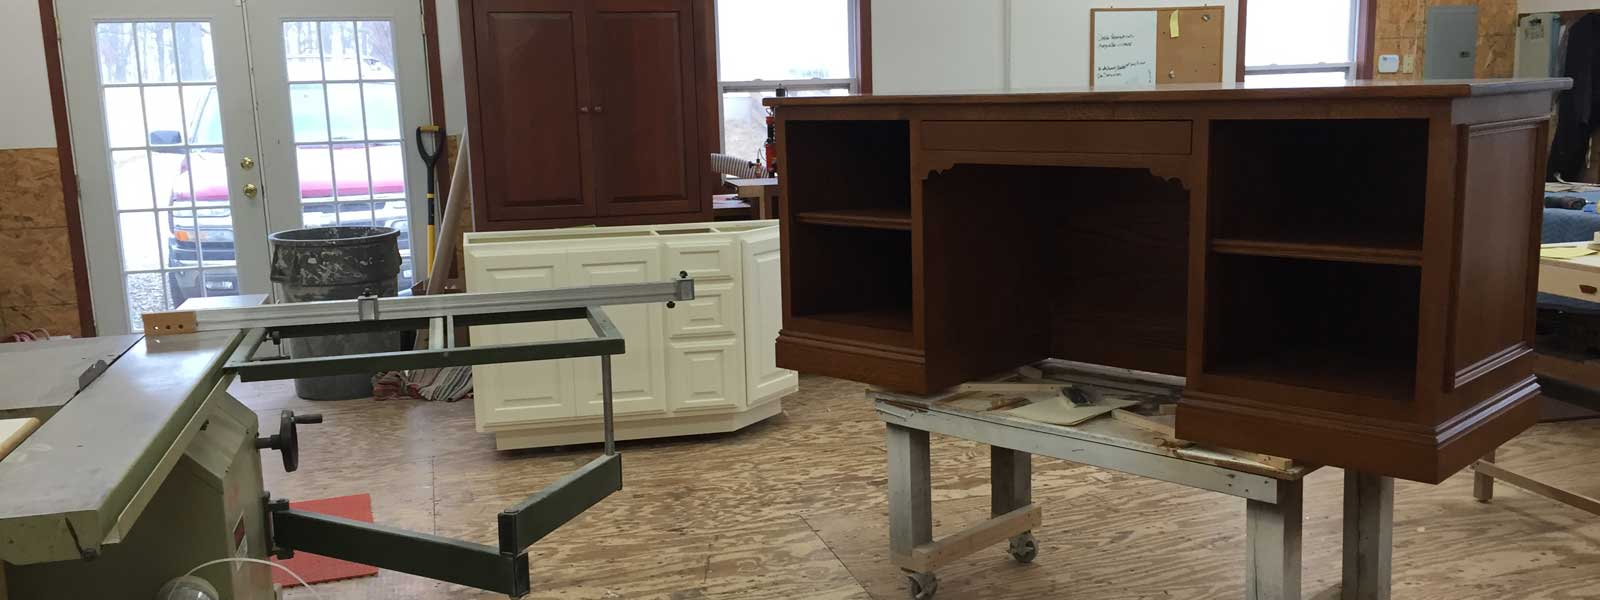 Custom Office Desk being constructed in our Central Ohio workshop.